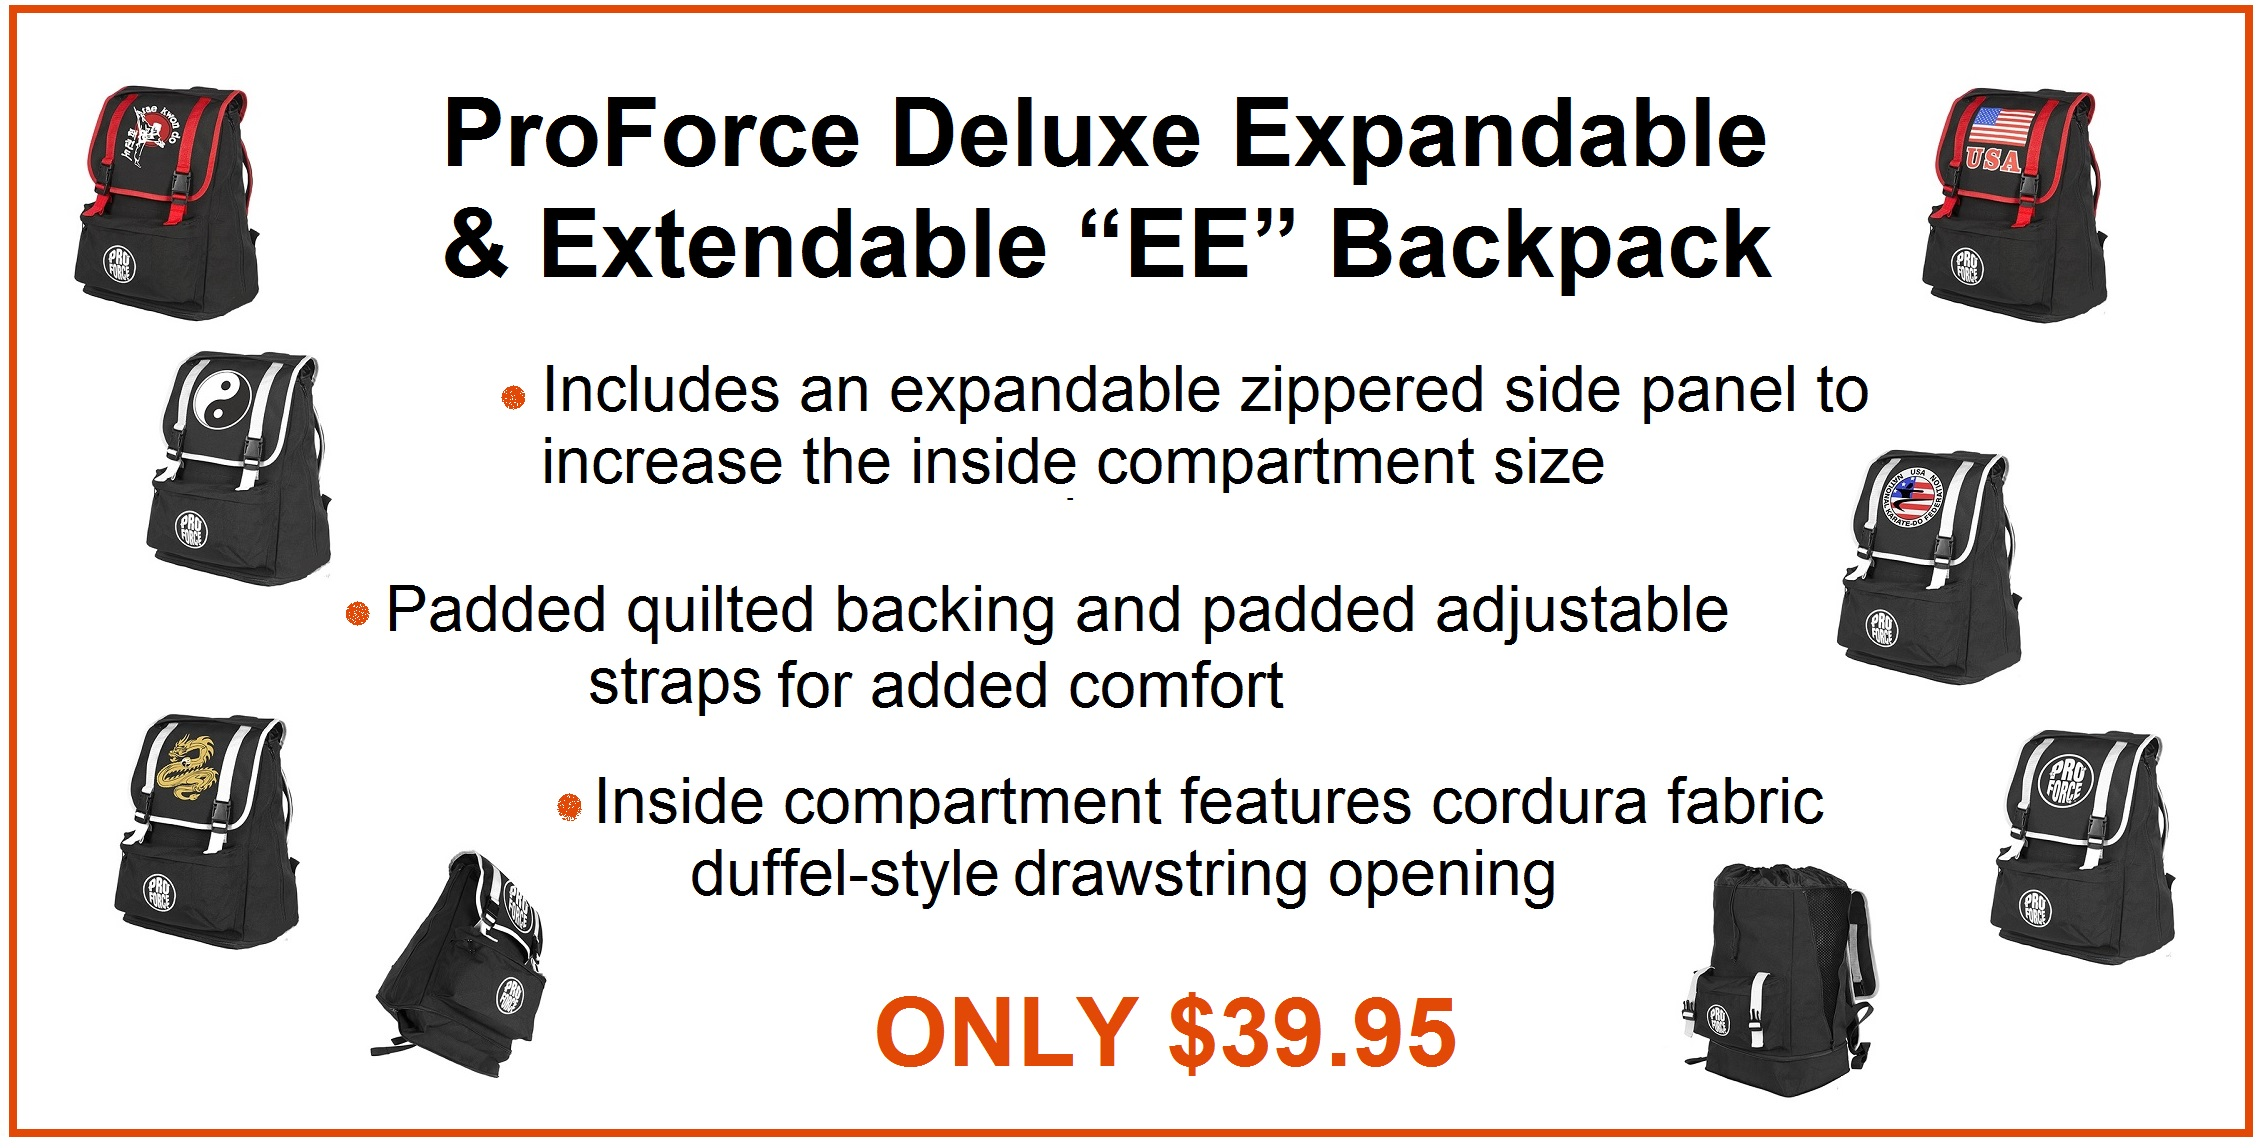 Expandable and Extendable backpack